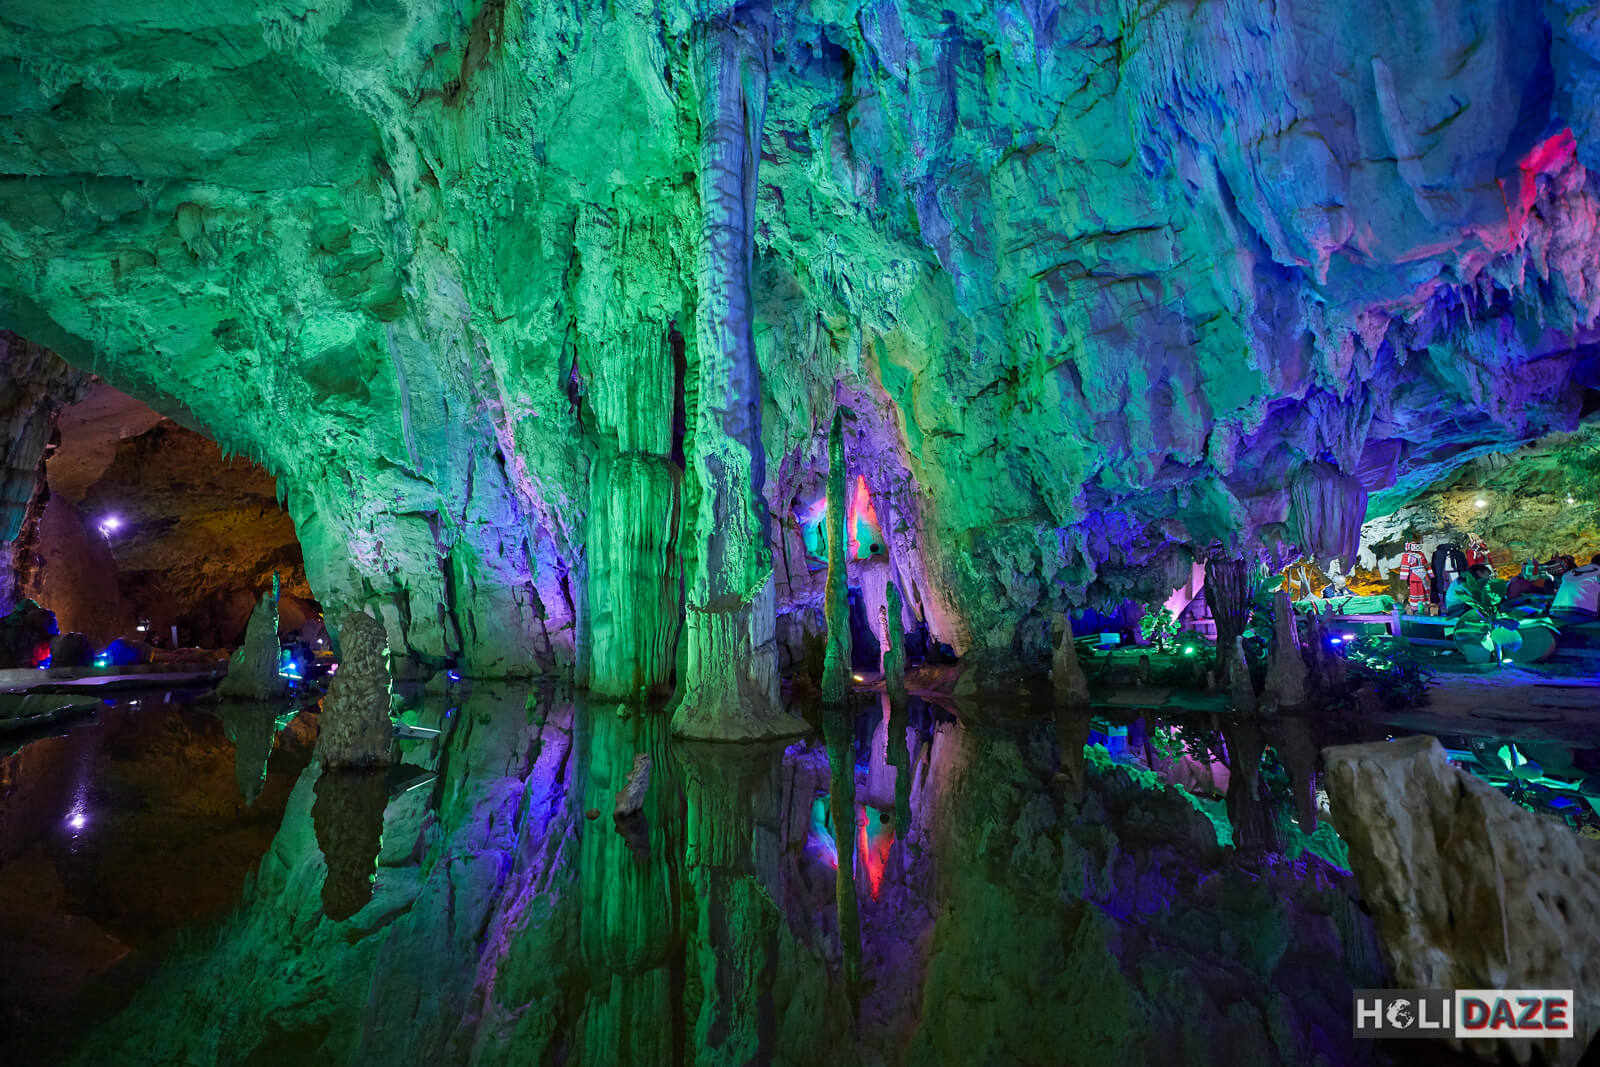 Jiuxiang Scenic Area is one of the must visit destinations in Yunnan, China because of the breathtaking natural beauty, including mountains, rivers, valleys and over 100 caves